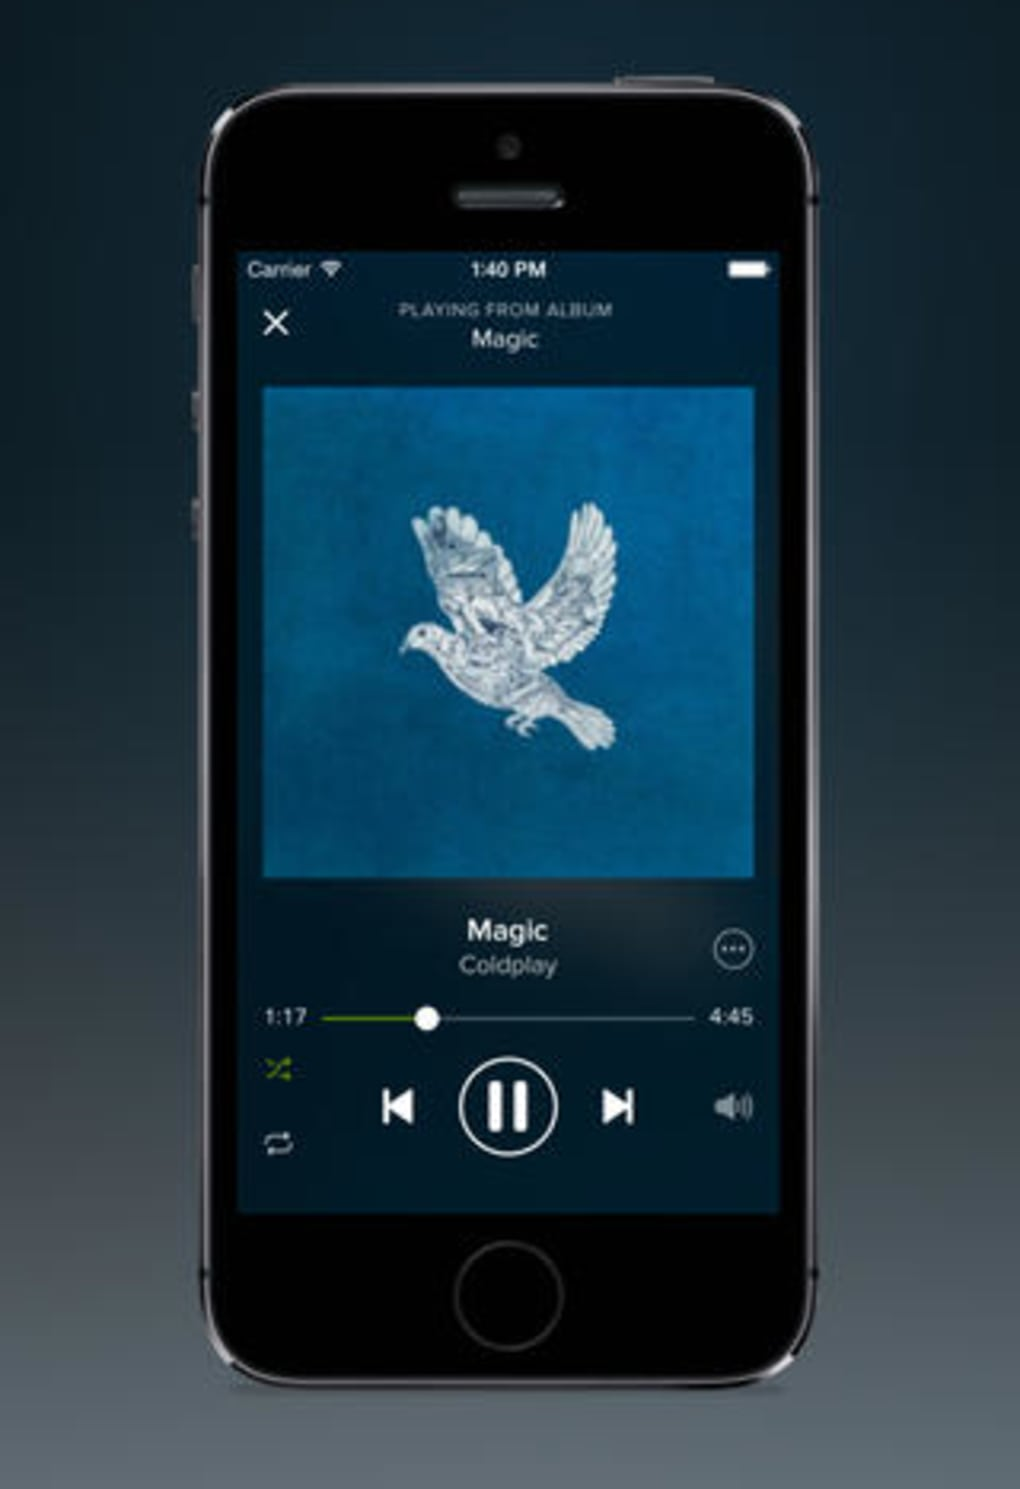 canzoni spotify iphone